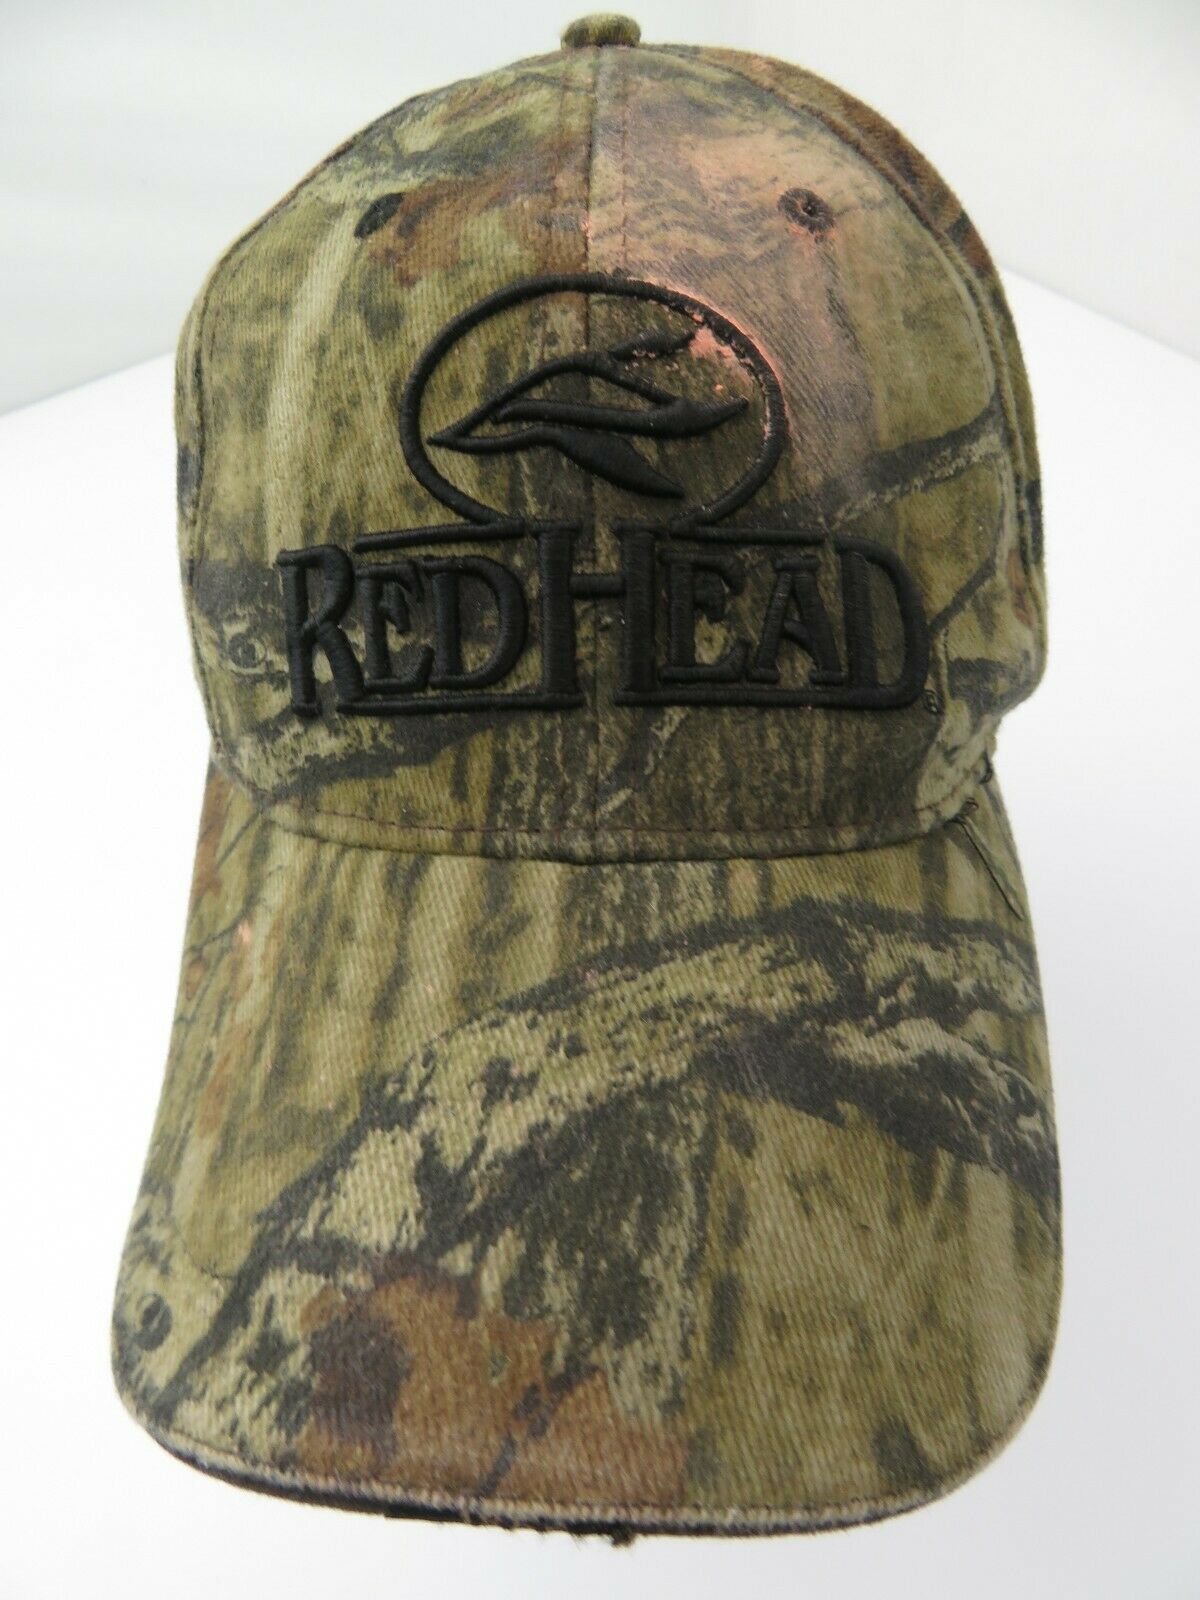 Primary image for Red Head Hunting Camouflage Adjustable Adult Cap Hat